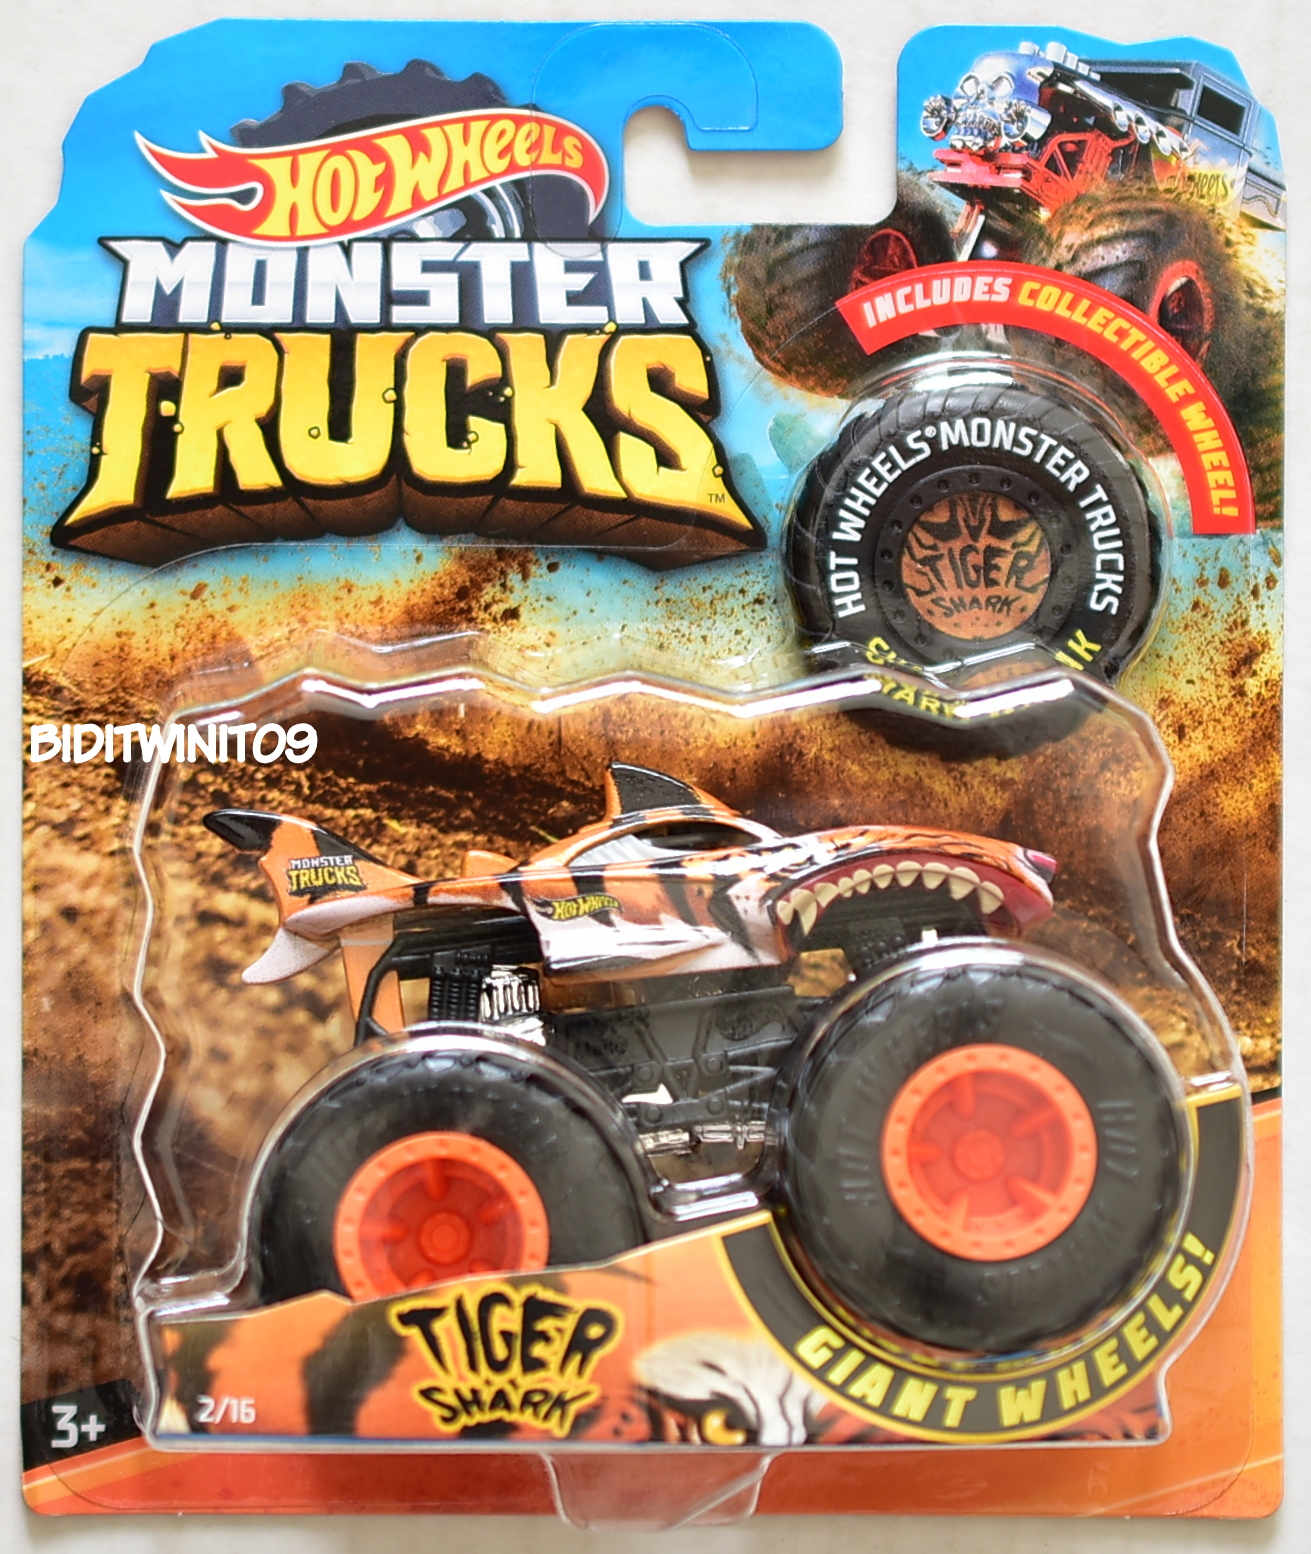 Hot Wheels 2018 Monster Trucks Giant Wheels Tiger Shark 2 16 0011997 8 60 Biditwinit09 Com Classic Colections